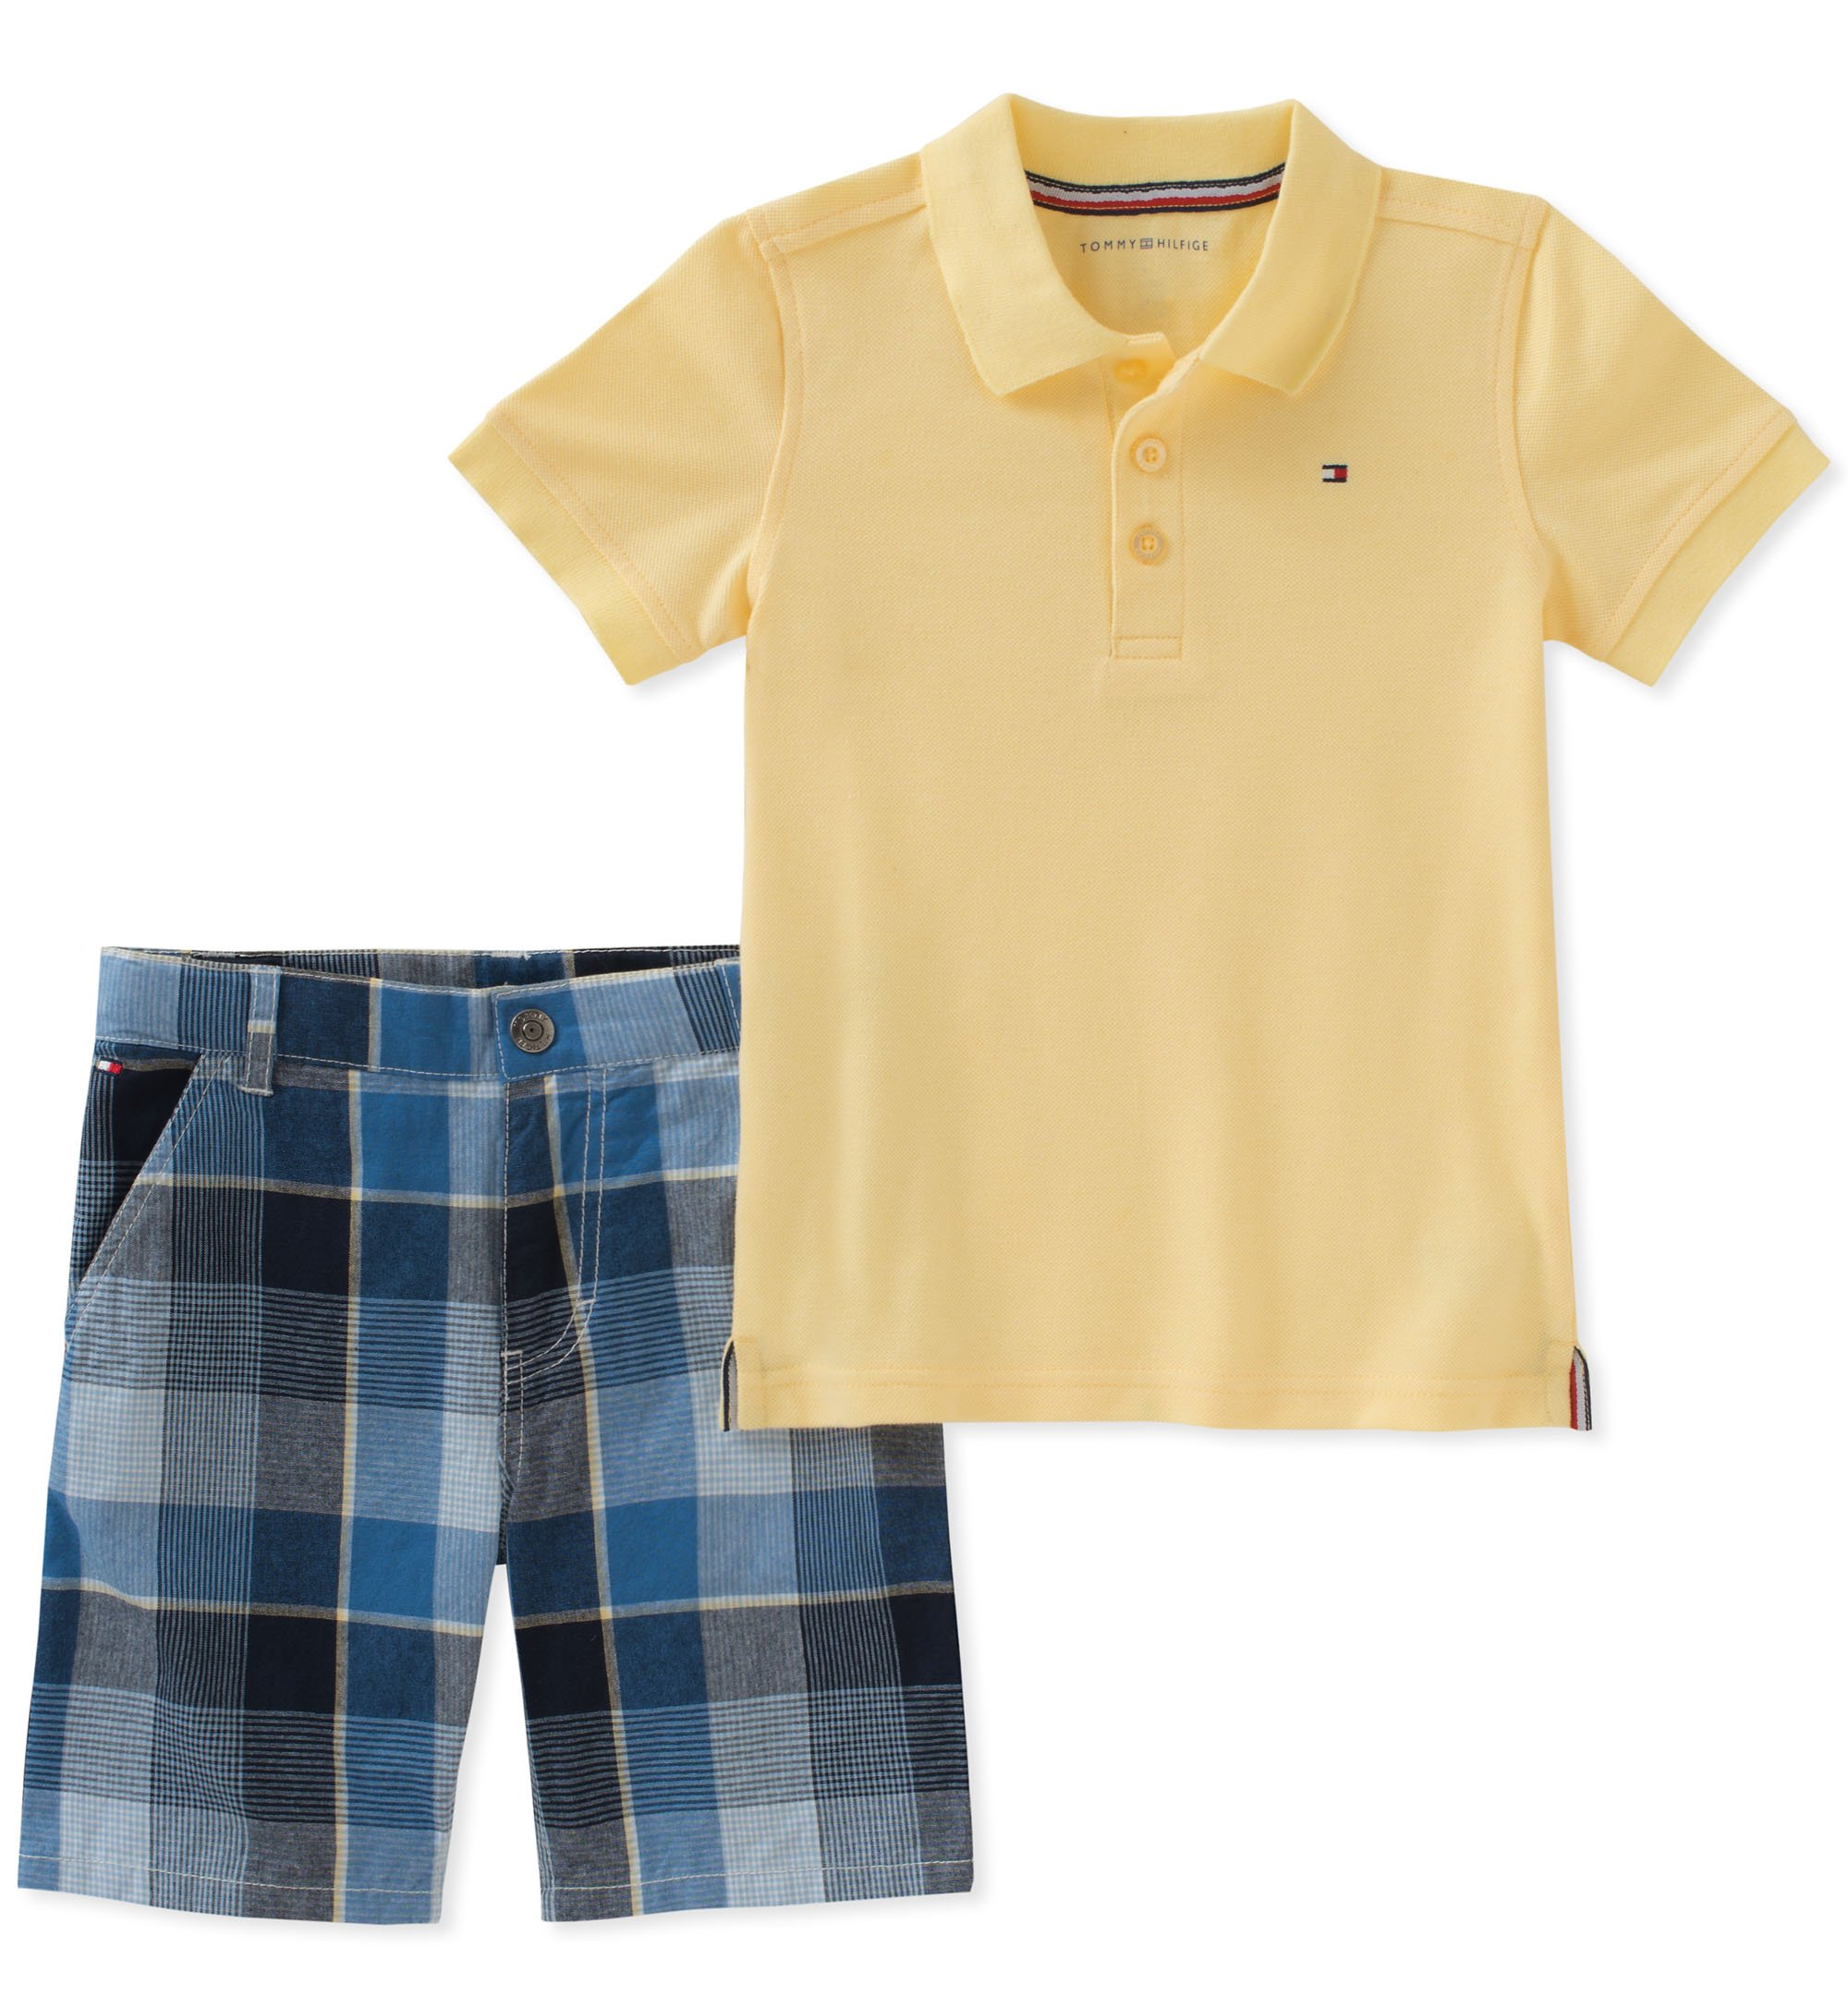 Tommy Hilfiger Boys' Toddler 2 Pieces Polo Shorts Set, Yellow, 2T